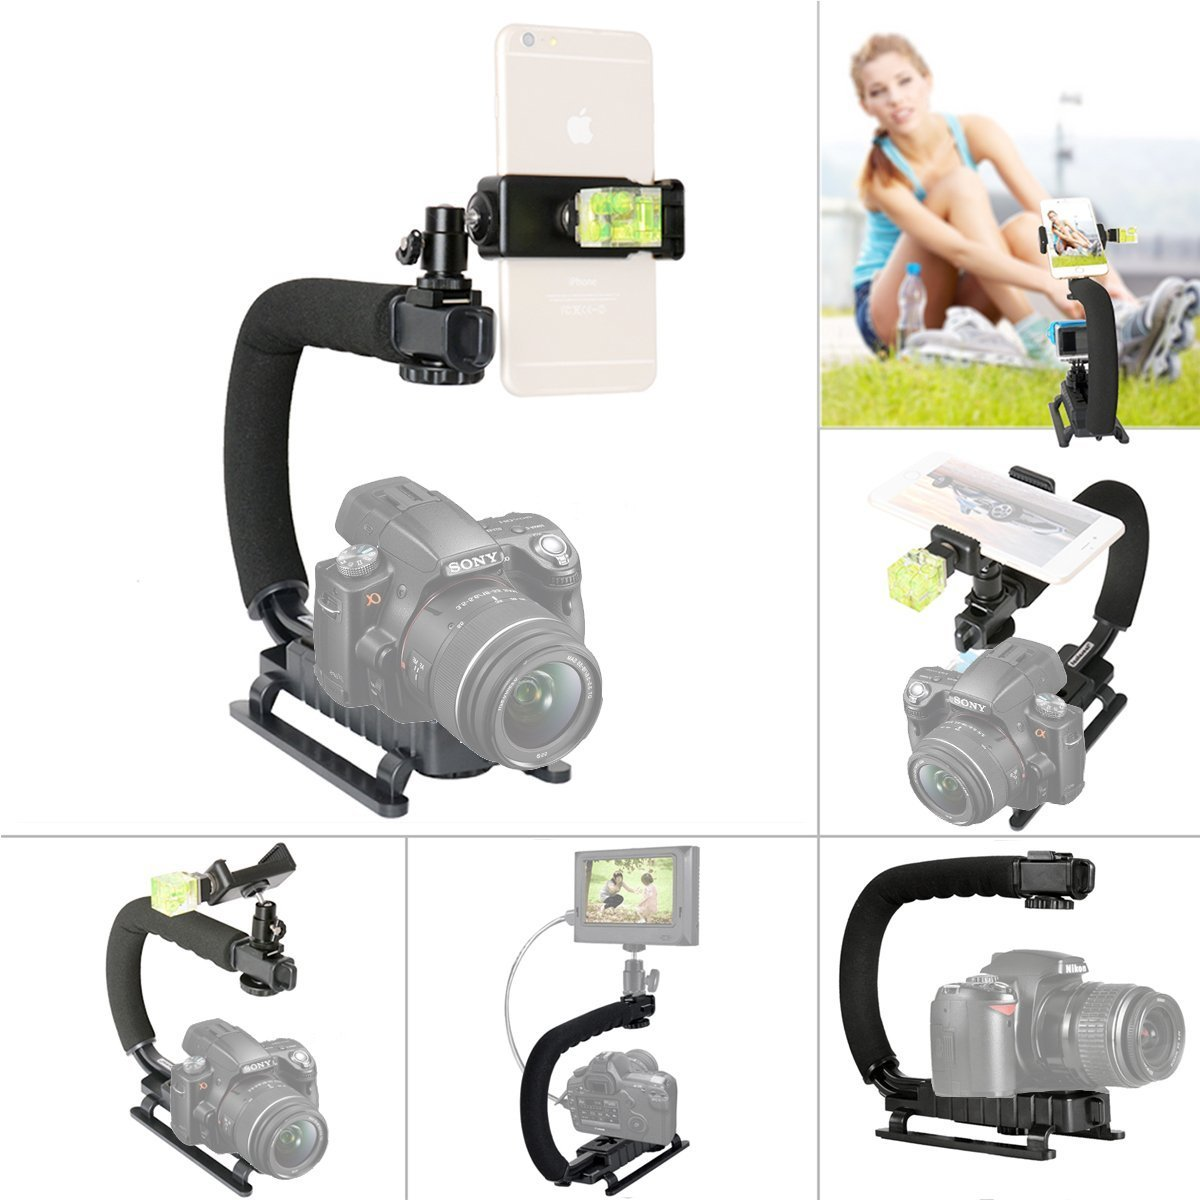 Fantaseal® Car Suction Cup Mount Holder Action Camera Cellphone Mobile Phone Car Mount Wall Mount Glass Mount Window Mount Car Support Holder Smartphone Holder for GoPro Suction Cup Mount GoPro Car Mount GoPro Holder Mount for GoPro Hero 6 / 5 / 4 /3+/